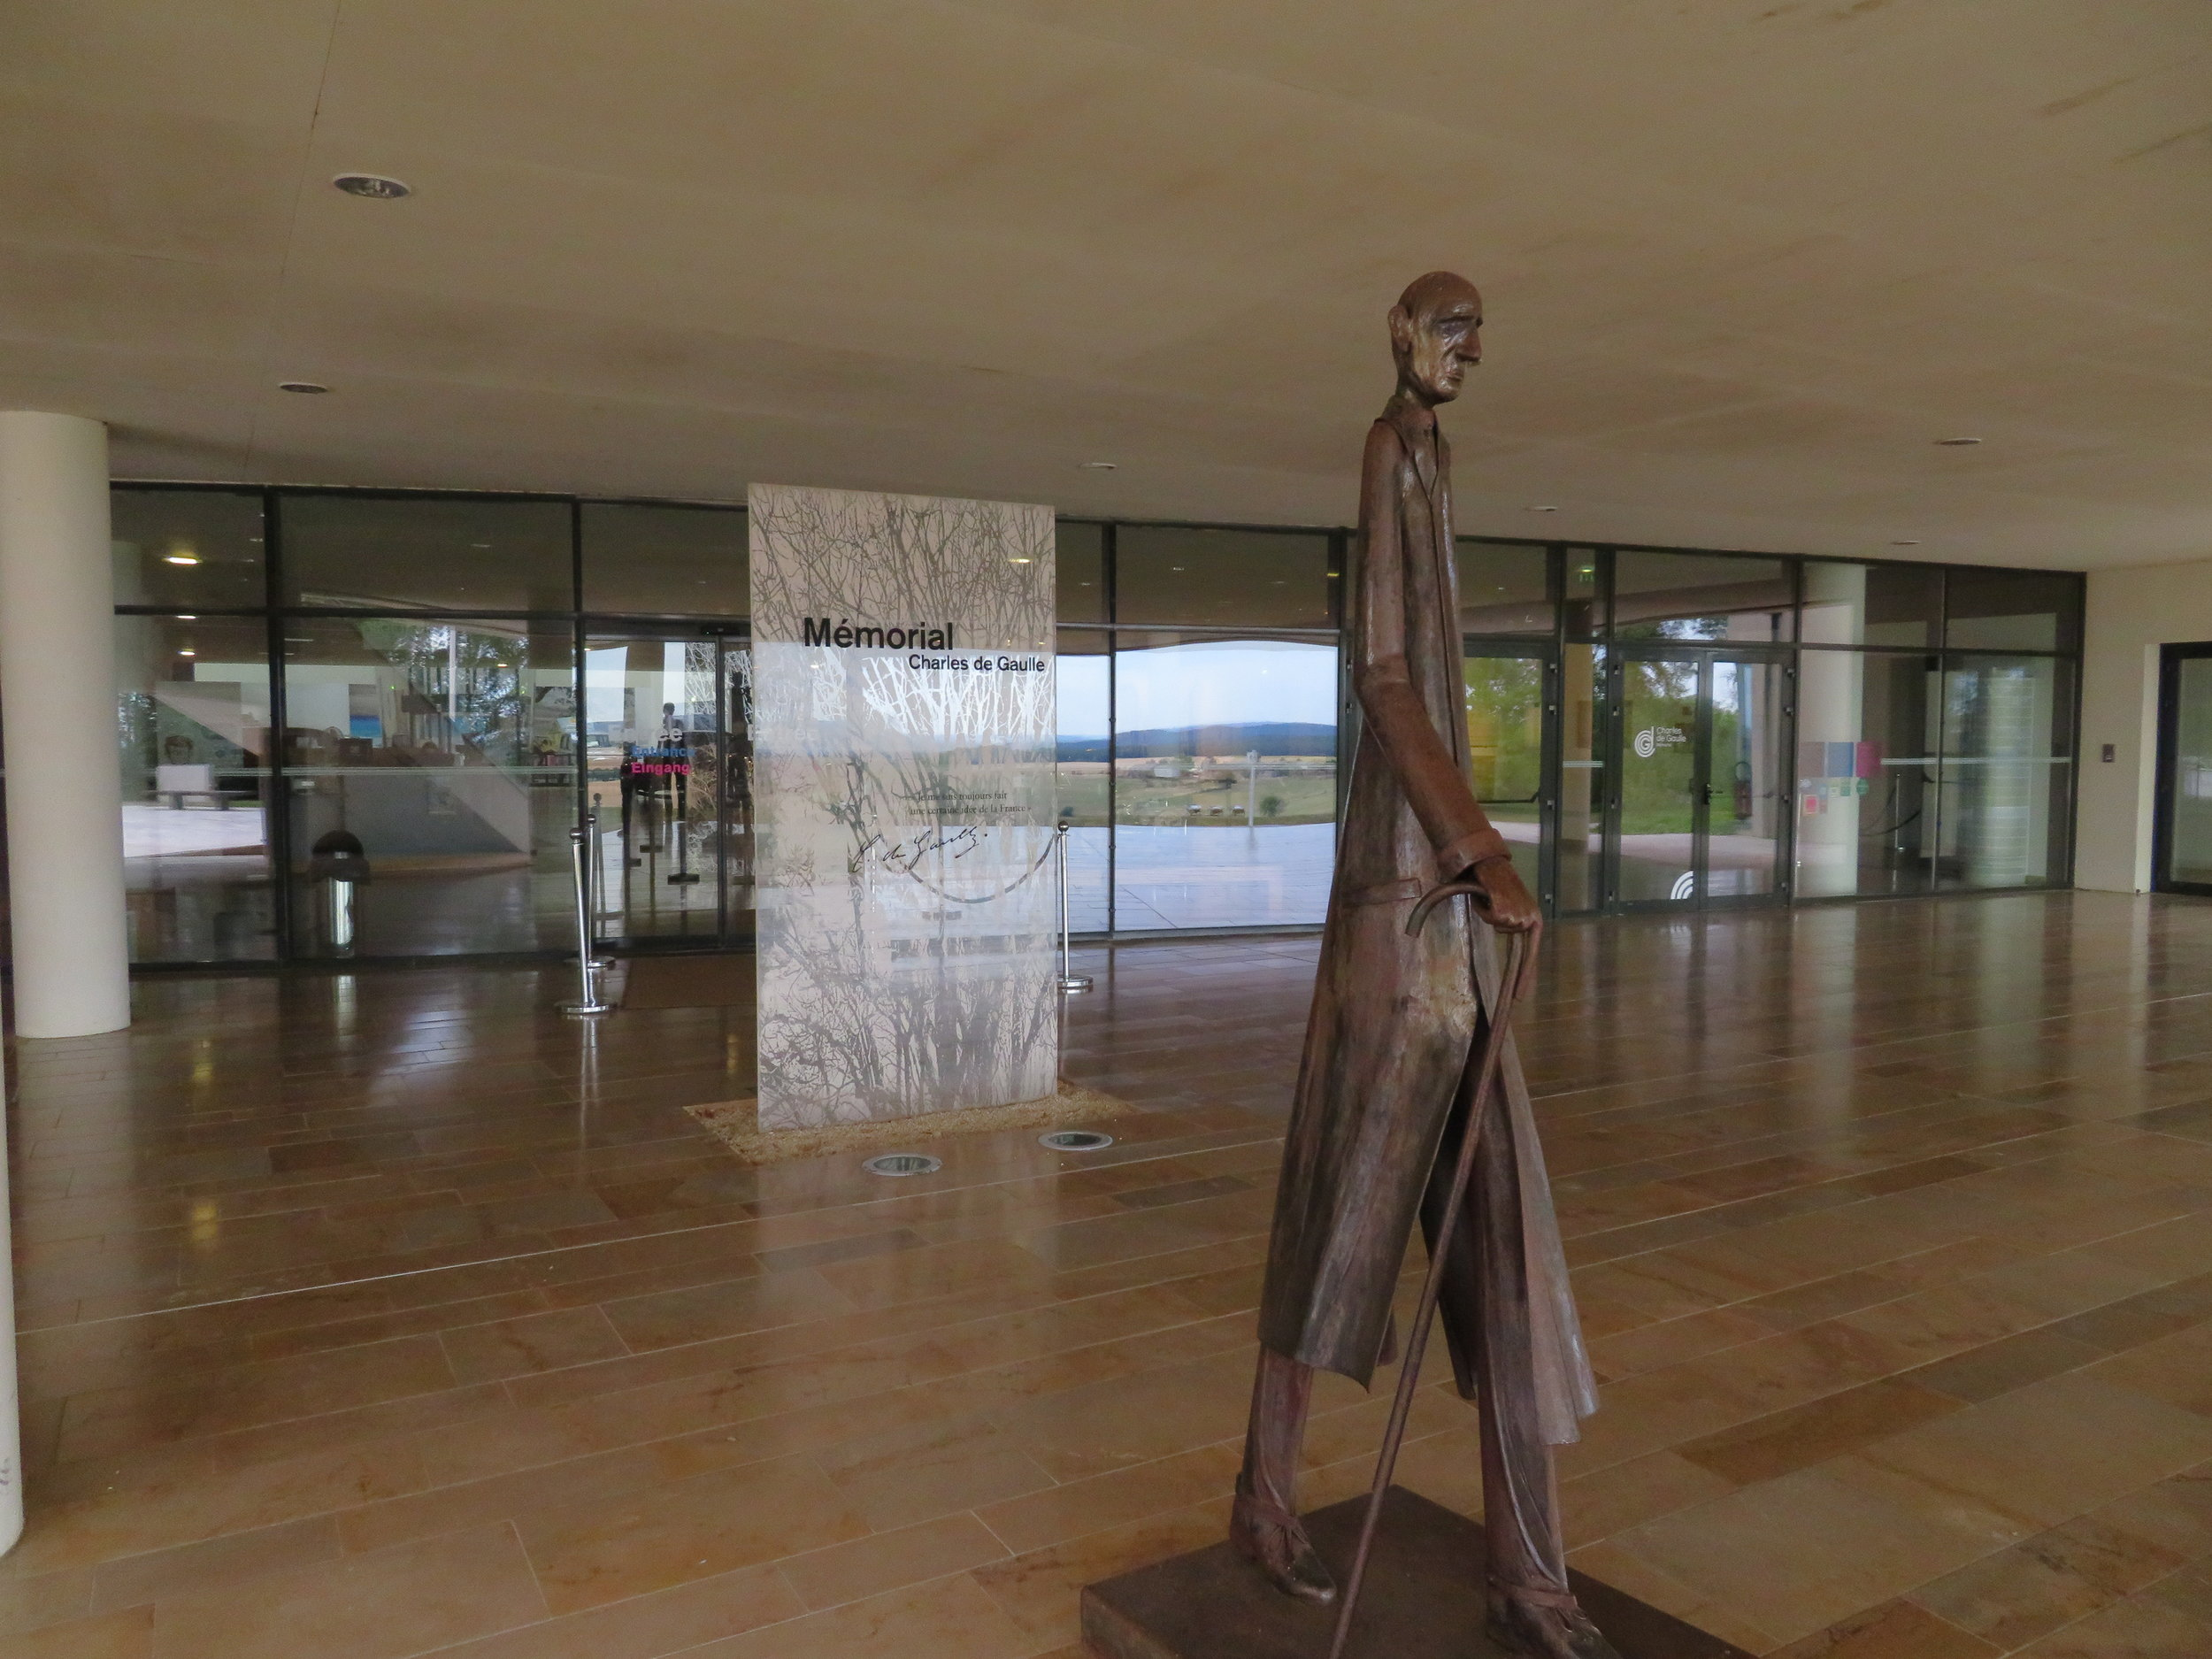 Charles DeGaulle Memorial and Museum